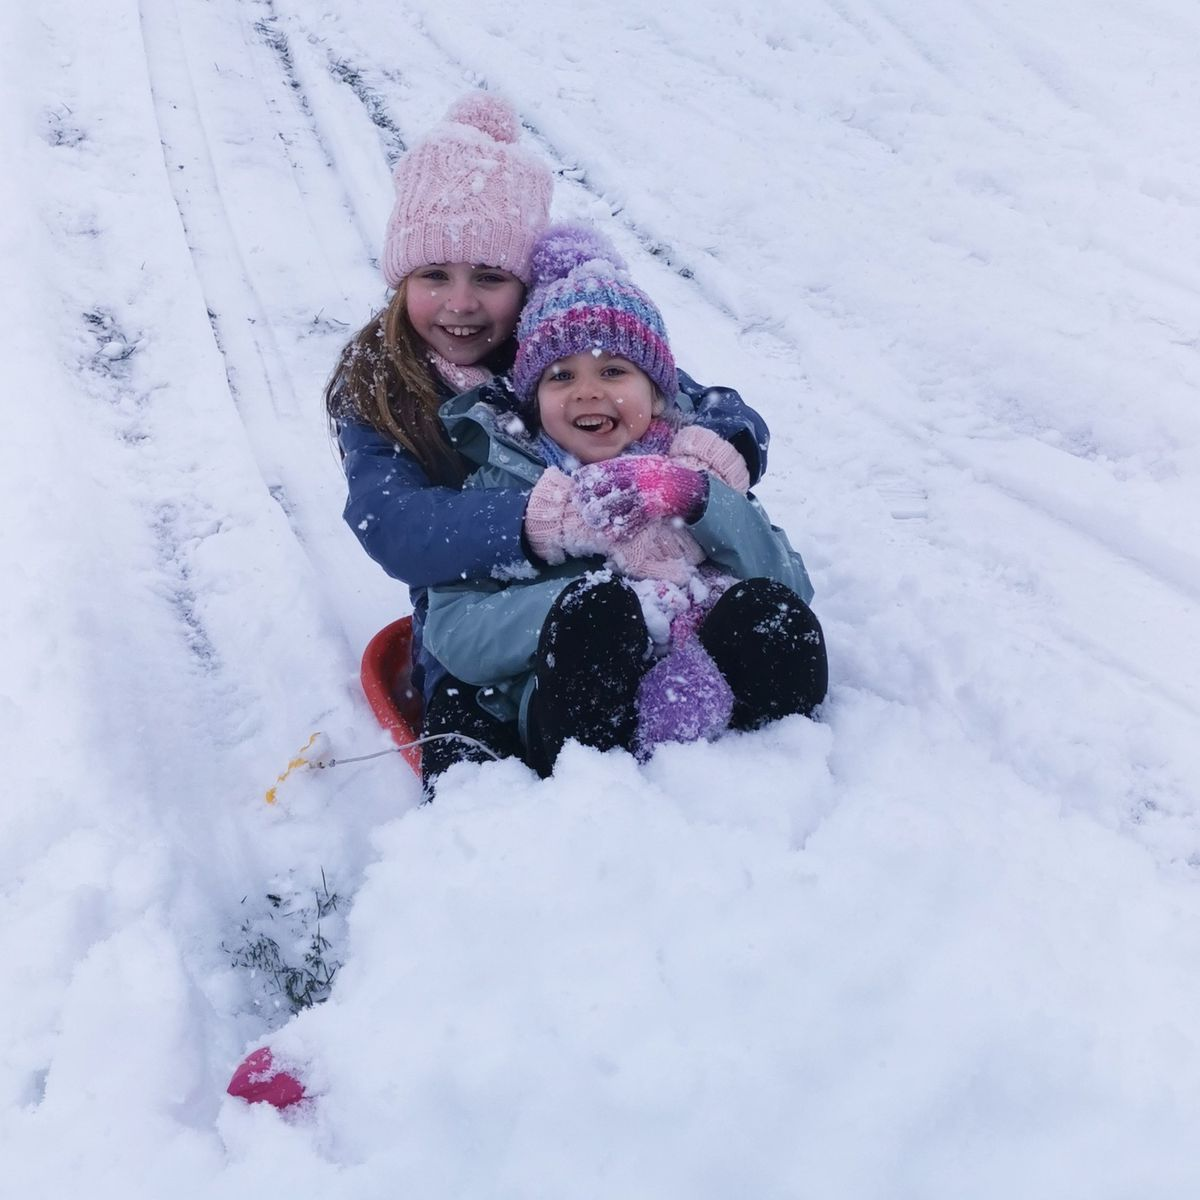 Lyndsey Parry's girls Ella and Lacey enjoying the snow in Oswestry